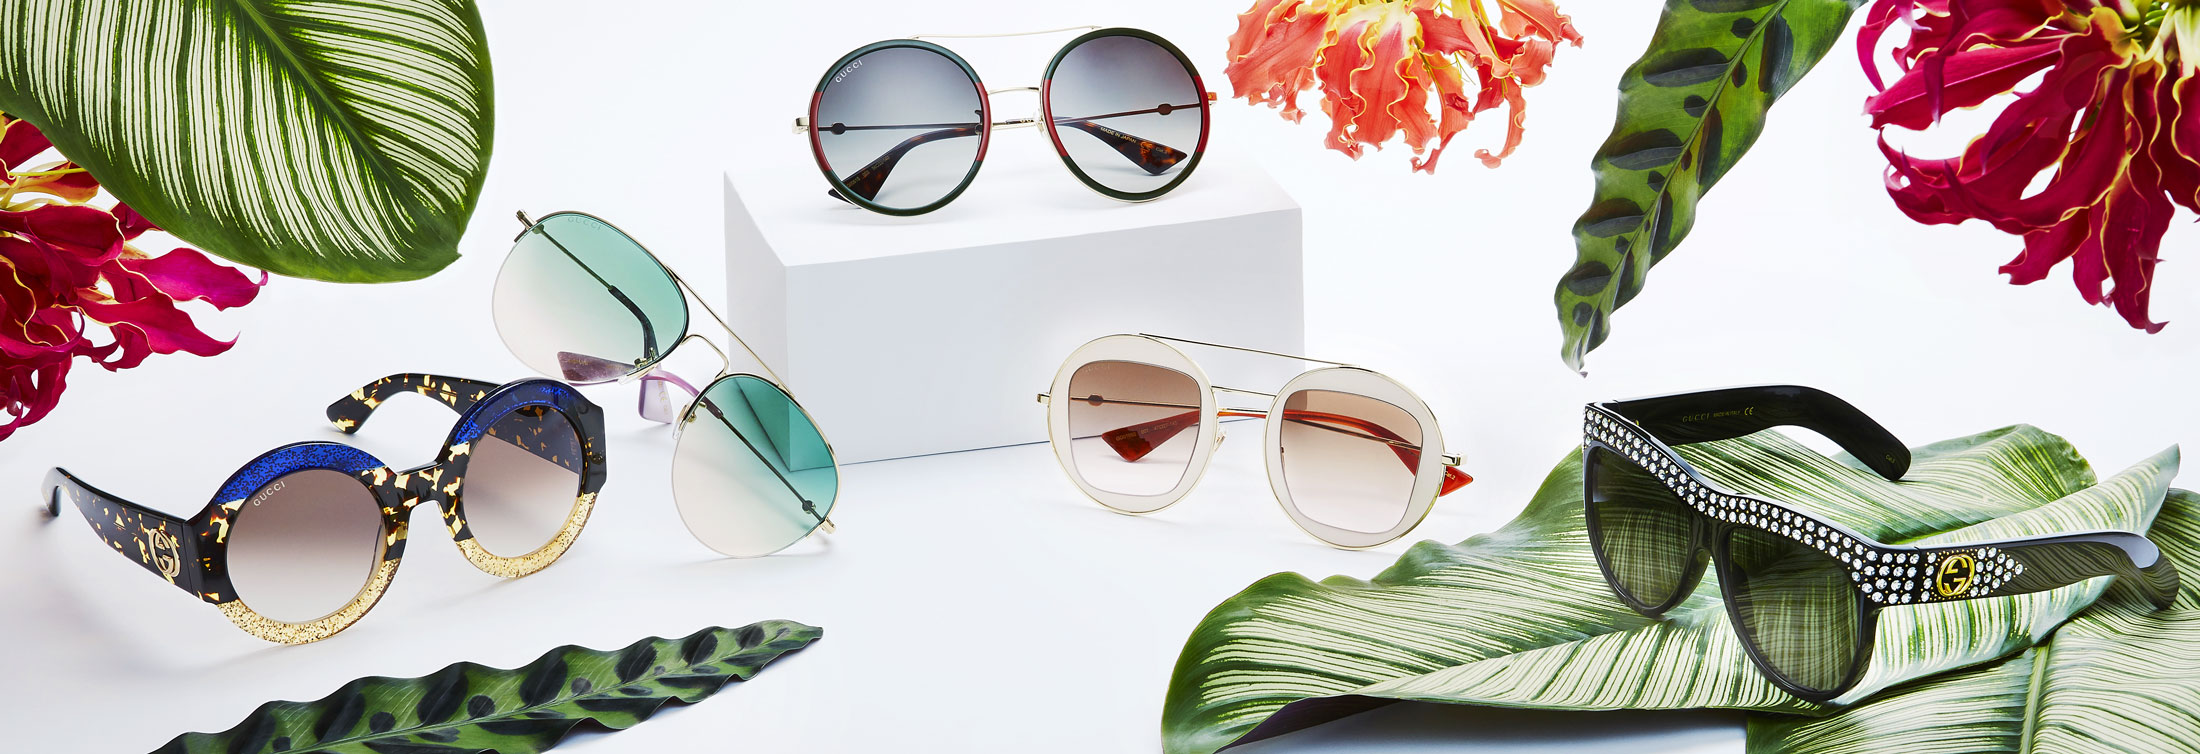 07.01_GUCCISUNGLASSES_061617-EDFLATS-ER-GUCCISUNGLASSBANNER-A-FLOWER-RIGHT-341